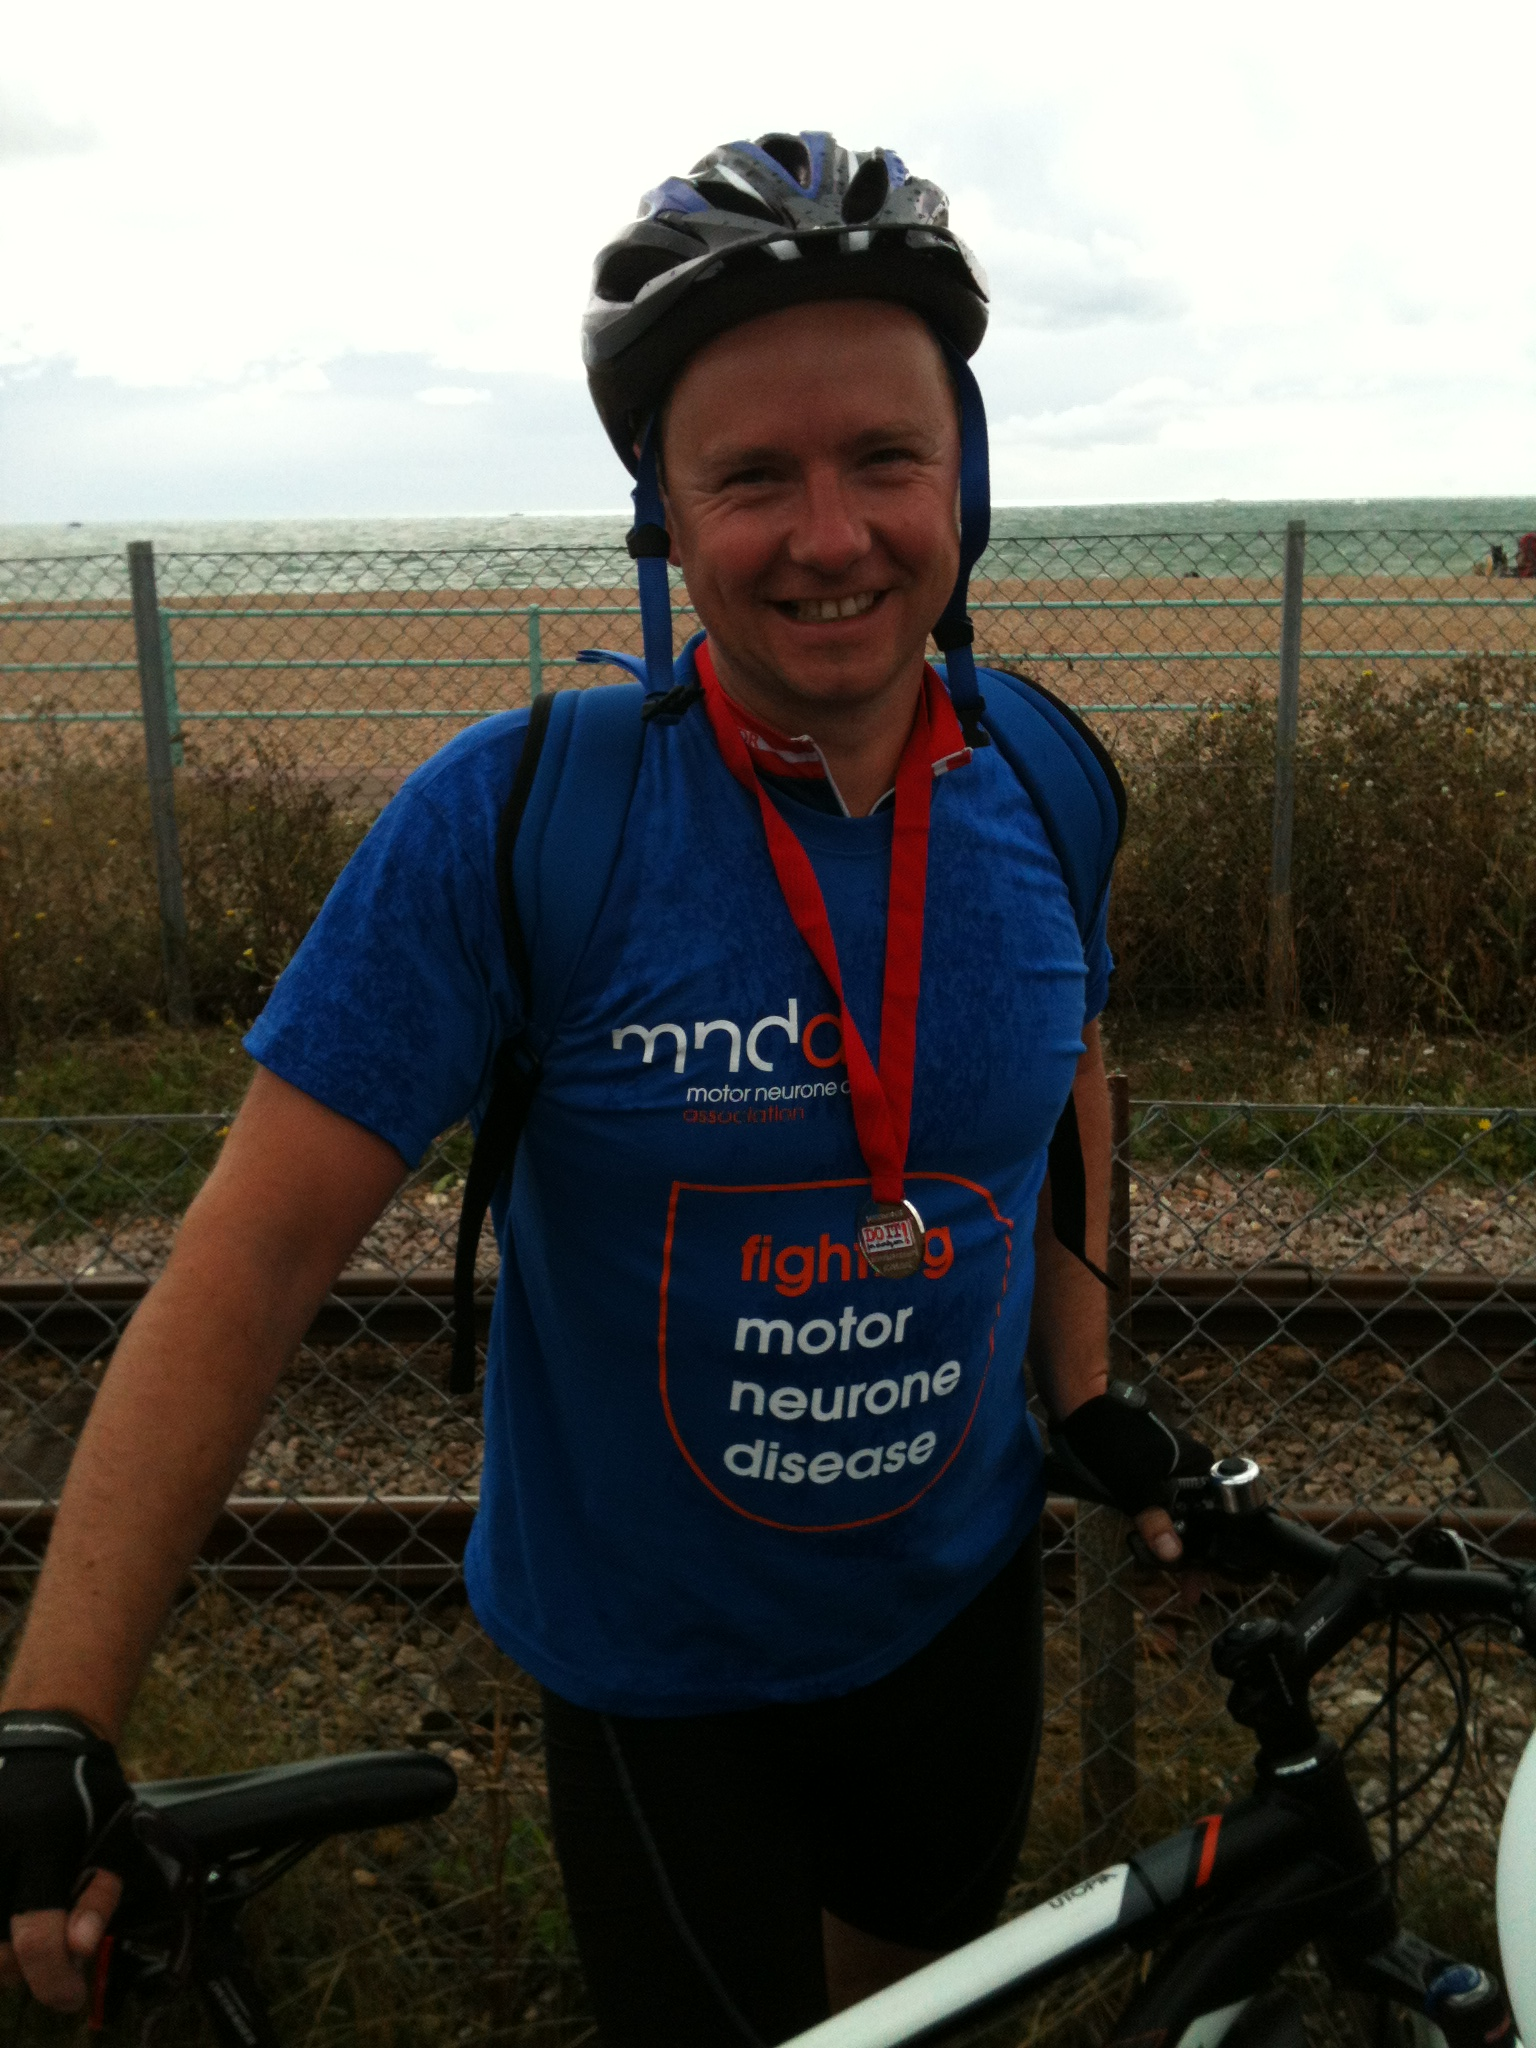 STEVE CYCLES FROM LONDON TO BRIGHTON TO RAISE FUNDS FOR MOTORNEURONE DISEASE